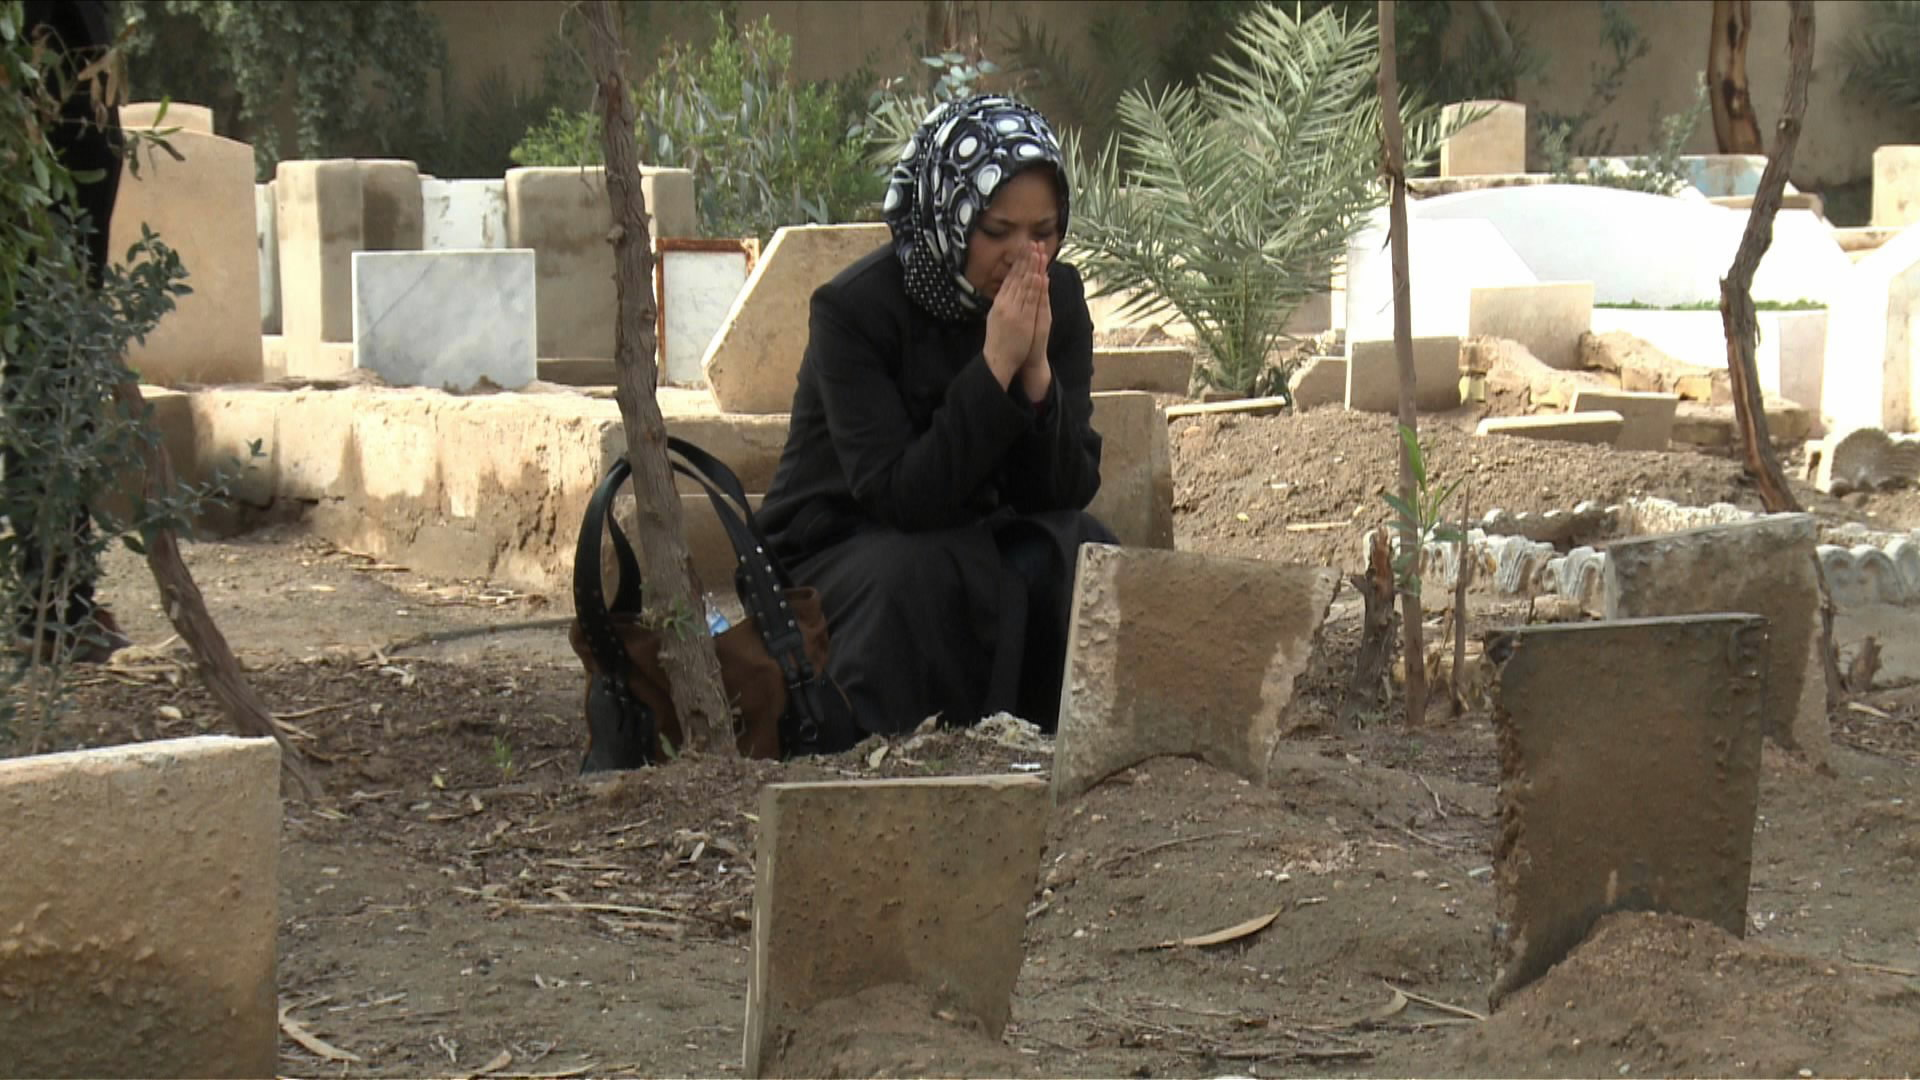 A photo provided by Megumi Ito shows Nahoko Takato praying before the grave of an Iraq War victim in a scene from the movie 'Fallujah.'   CHUNICHI SHIMBUN